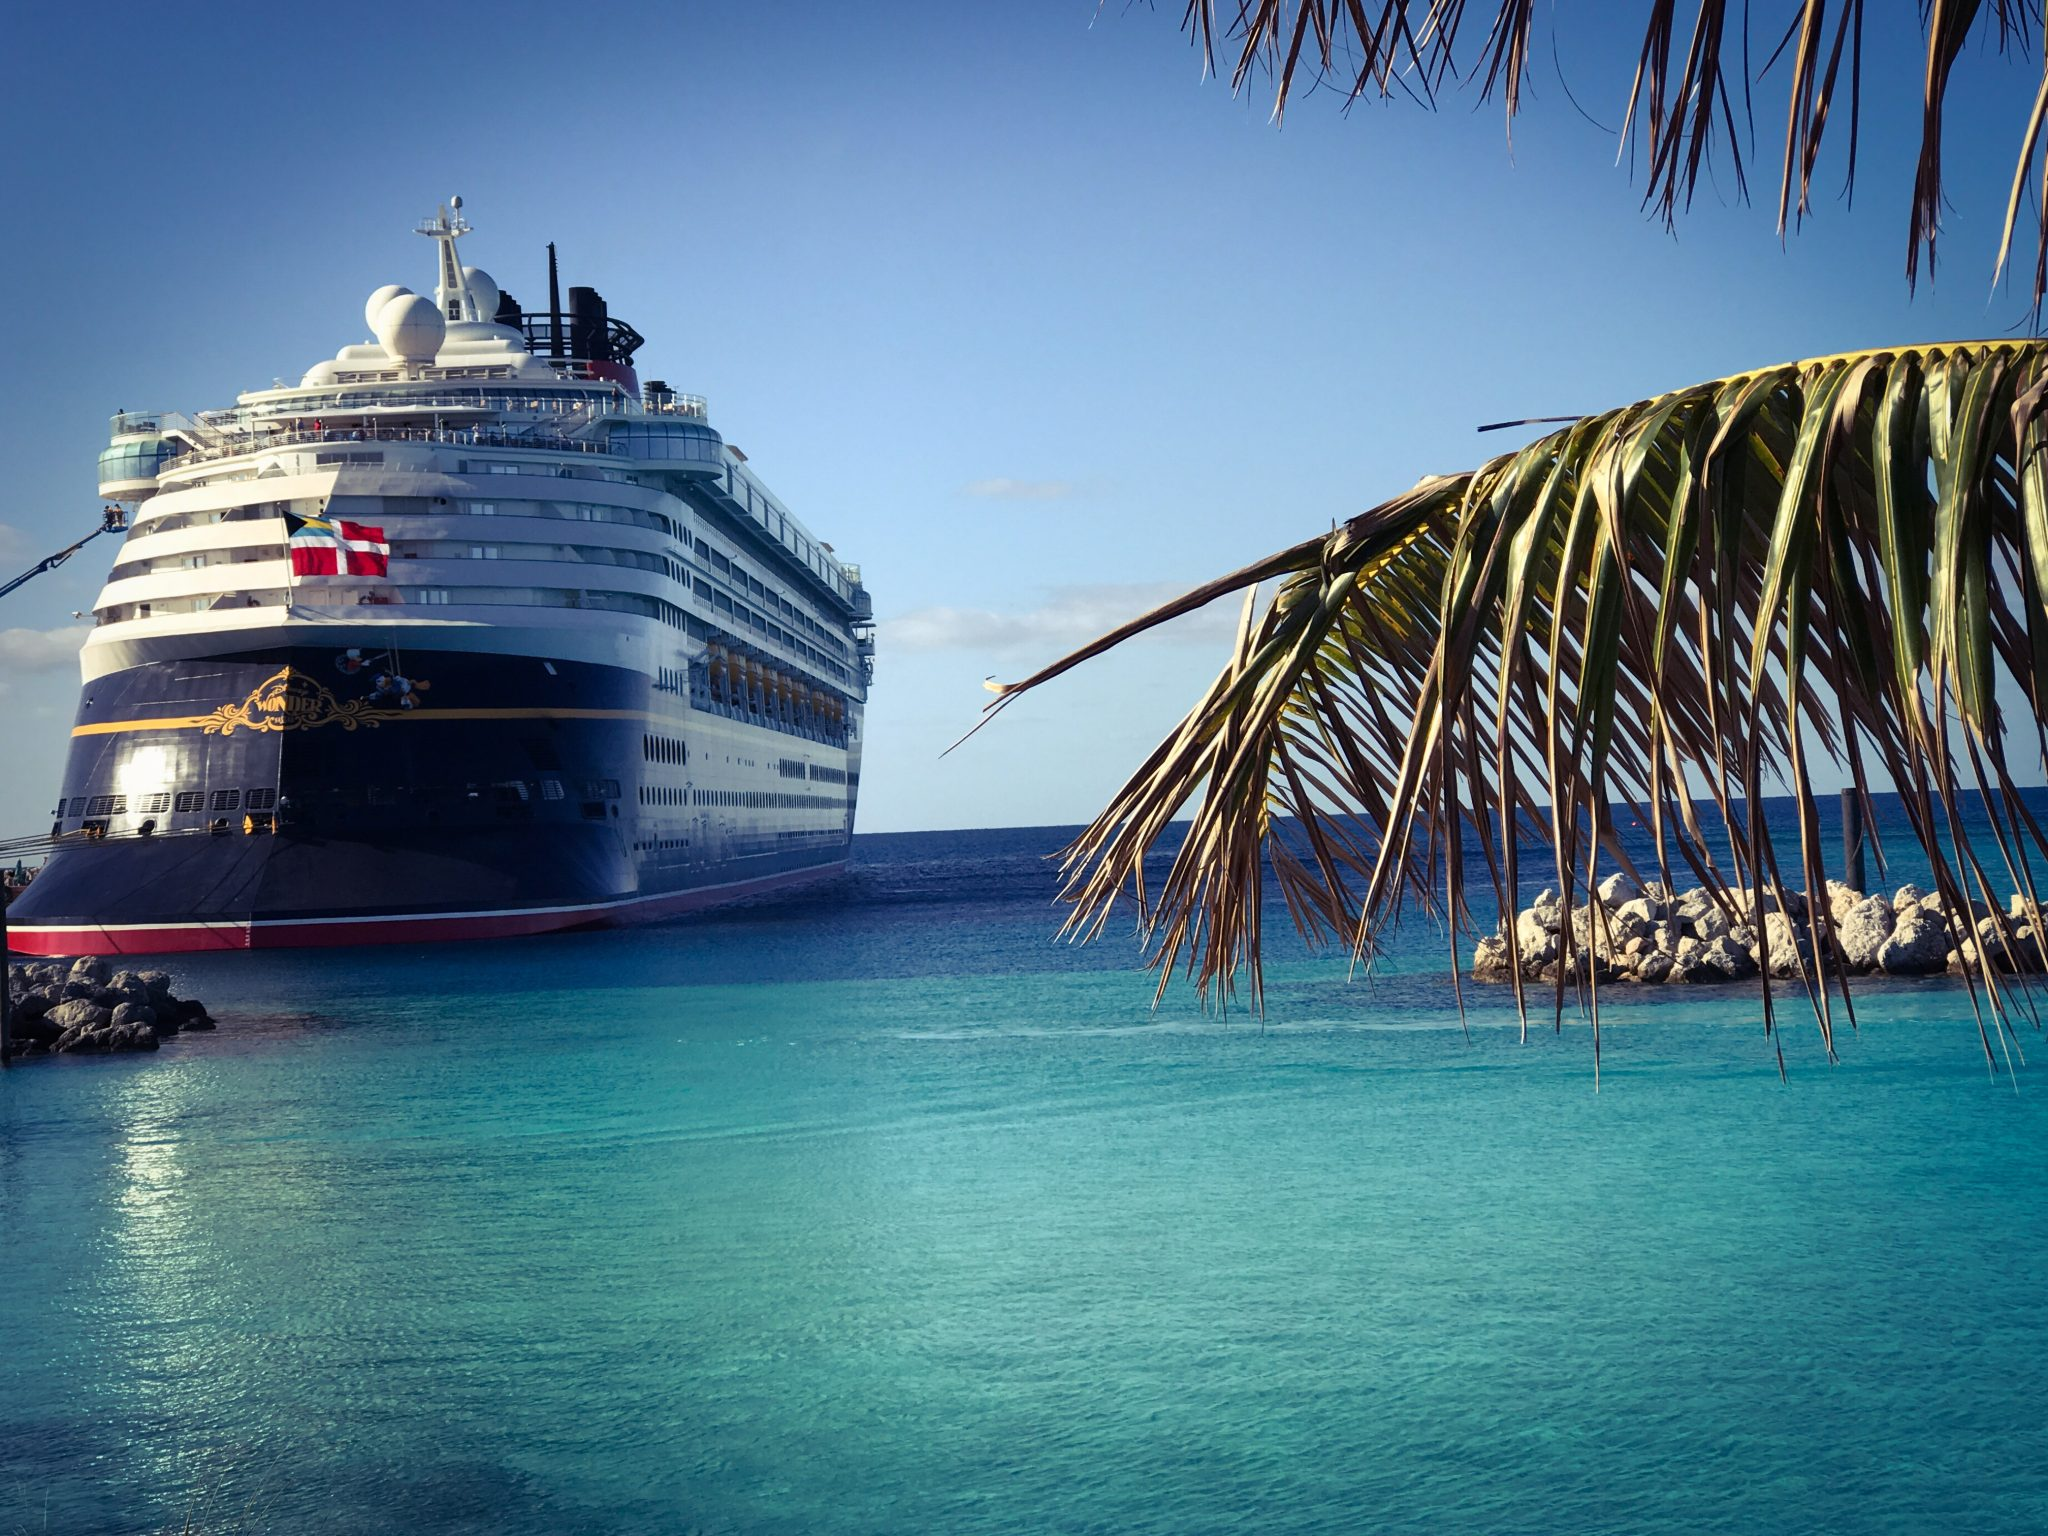 Disney Cruise Line Offers Even More Vacation Options with ... |Castaway Cay Disney Cruise Line